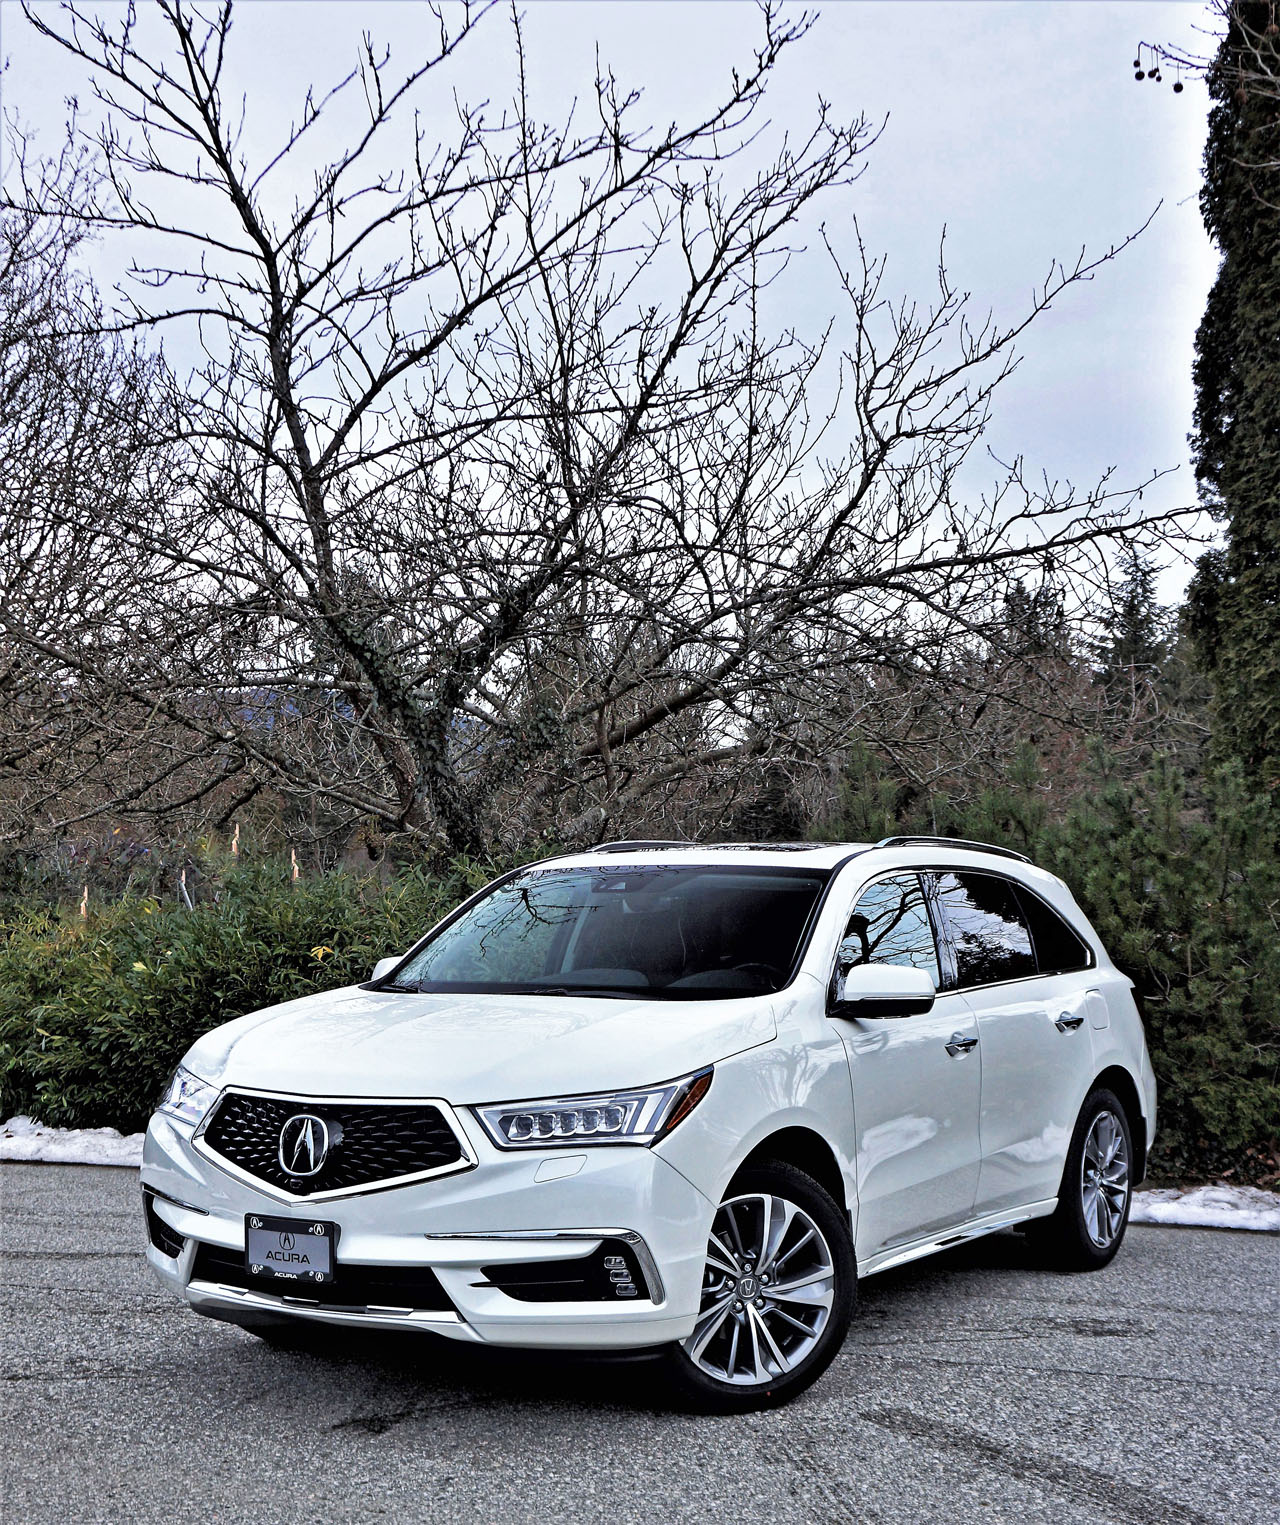 2017 Acura MDX Elite 6 Passenger Road Test Review